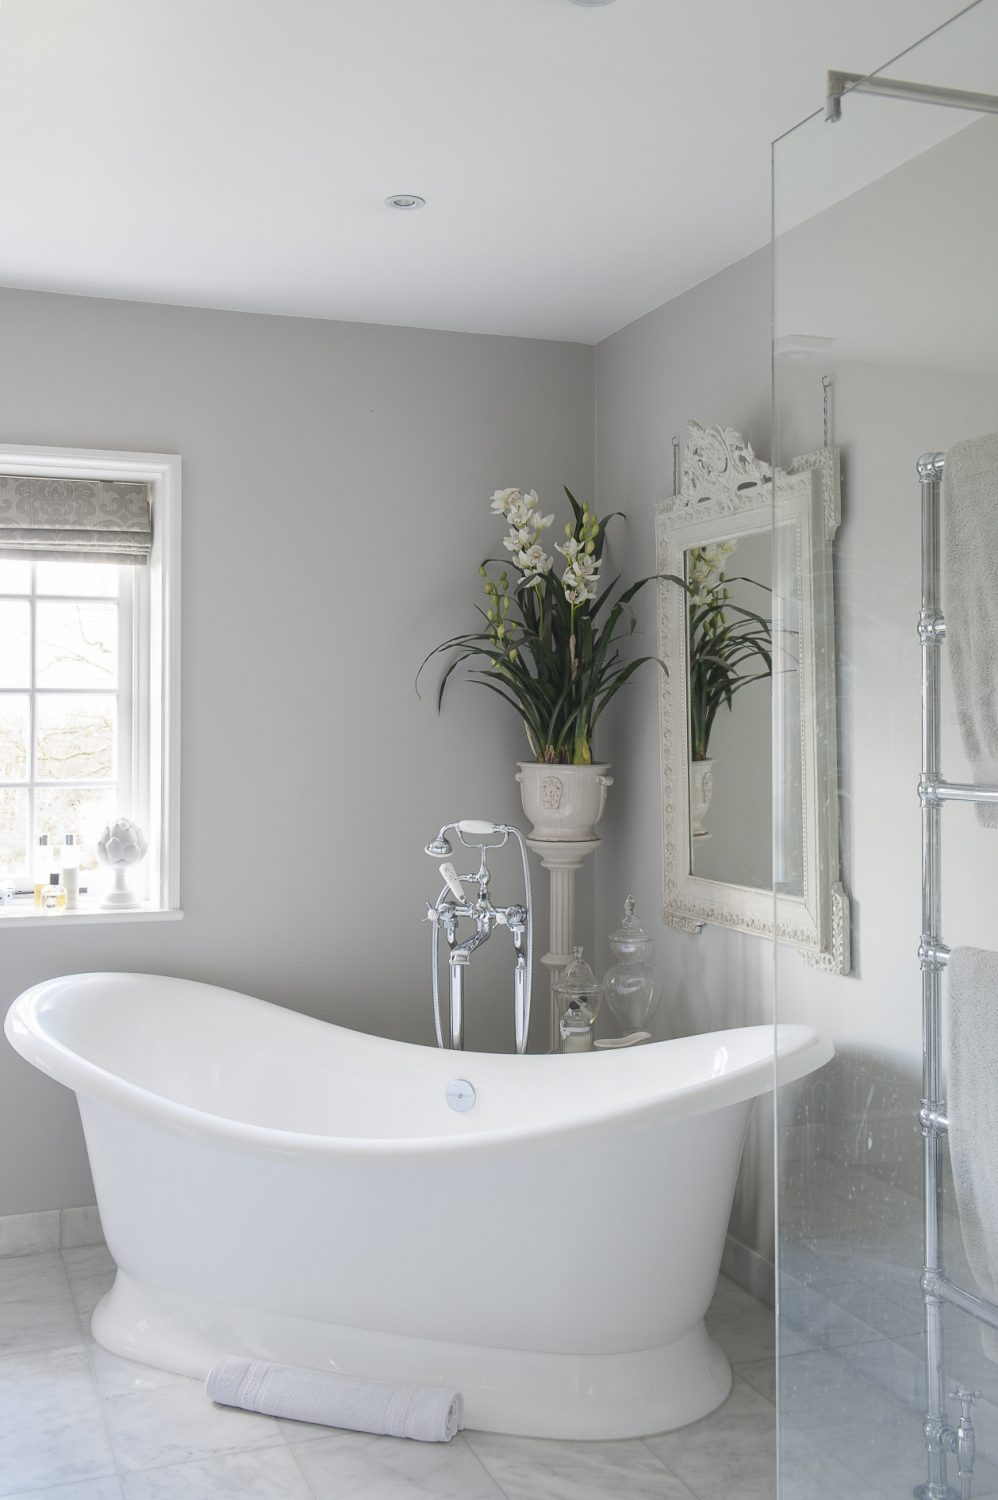 A volcanic limestone double-ended bath is large enough to accommodate Victoria and both children